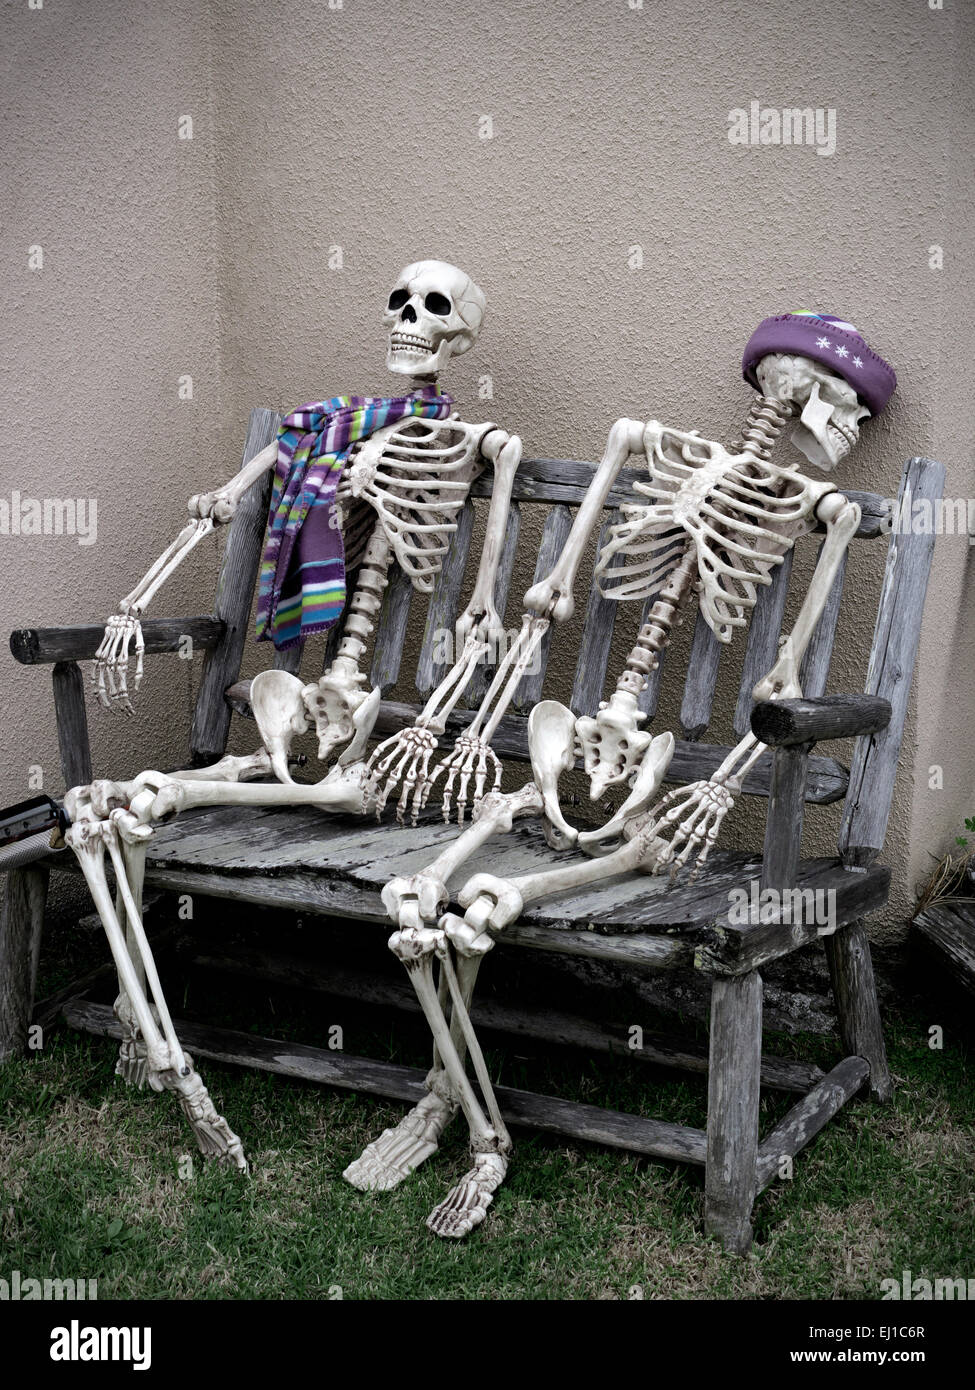 SKELETONS SITTING WAITING Conceptual dark humour image of two skeletons sitting waiting together on a bench - Stock Image